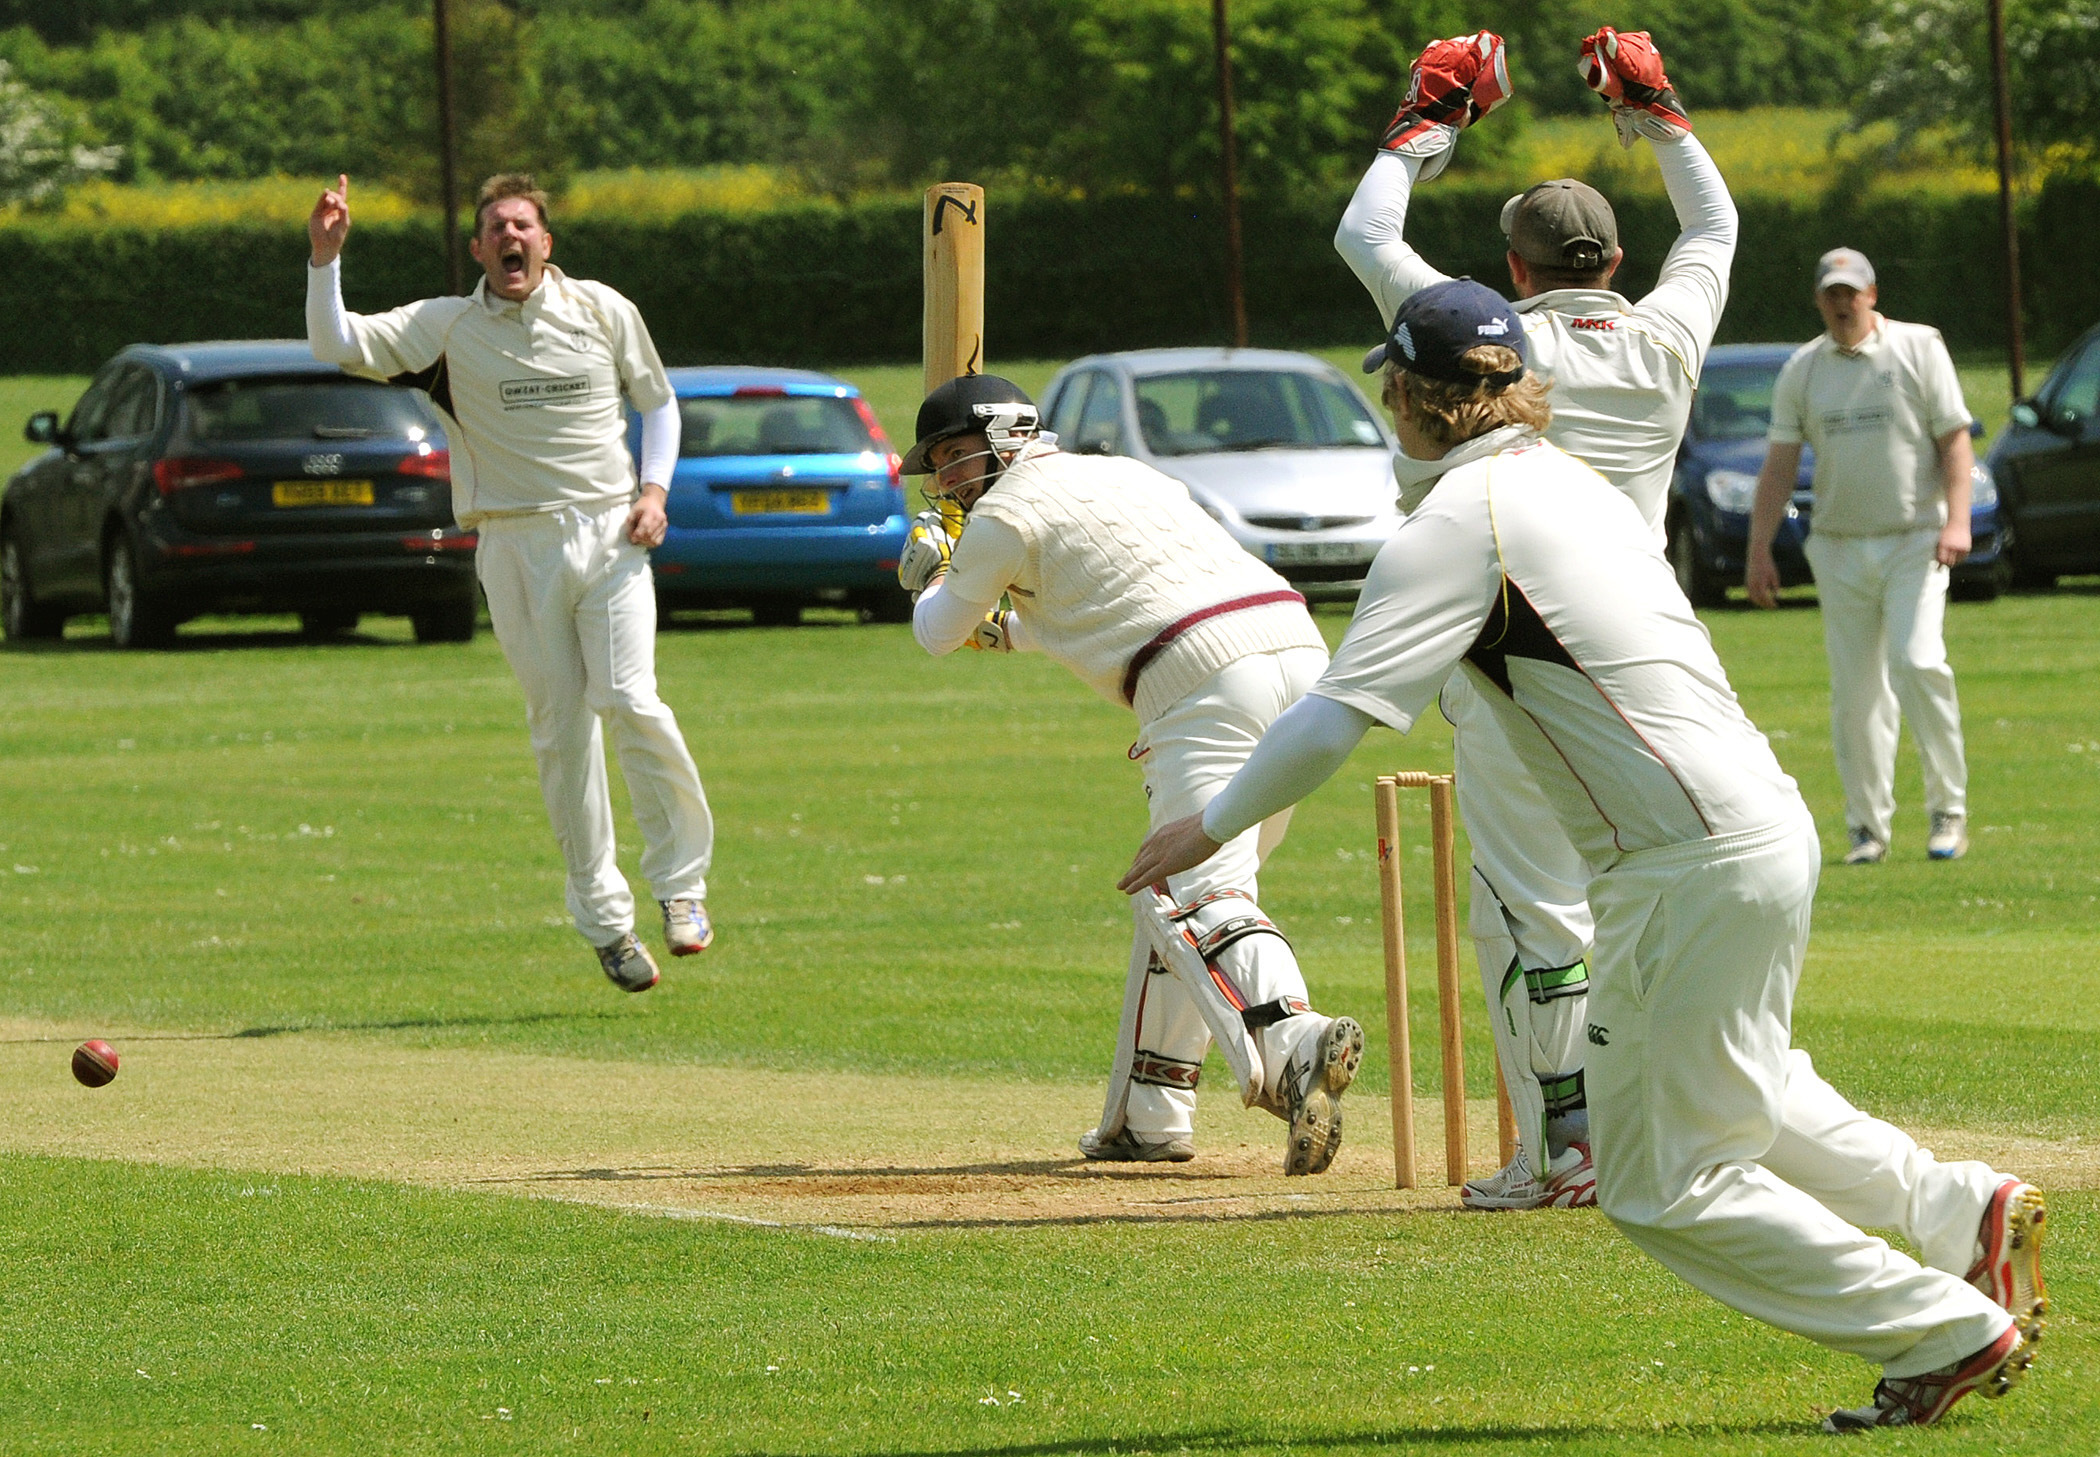 Sheriff Hutton Bridge batsman Robert Pinder plays the ball away much to the frustration of Woodhouse Grange bowler Steve Burdett and keeper Mike Burdett  during the match at Woodhouse Grange.